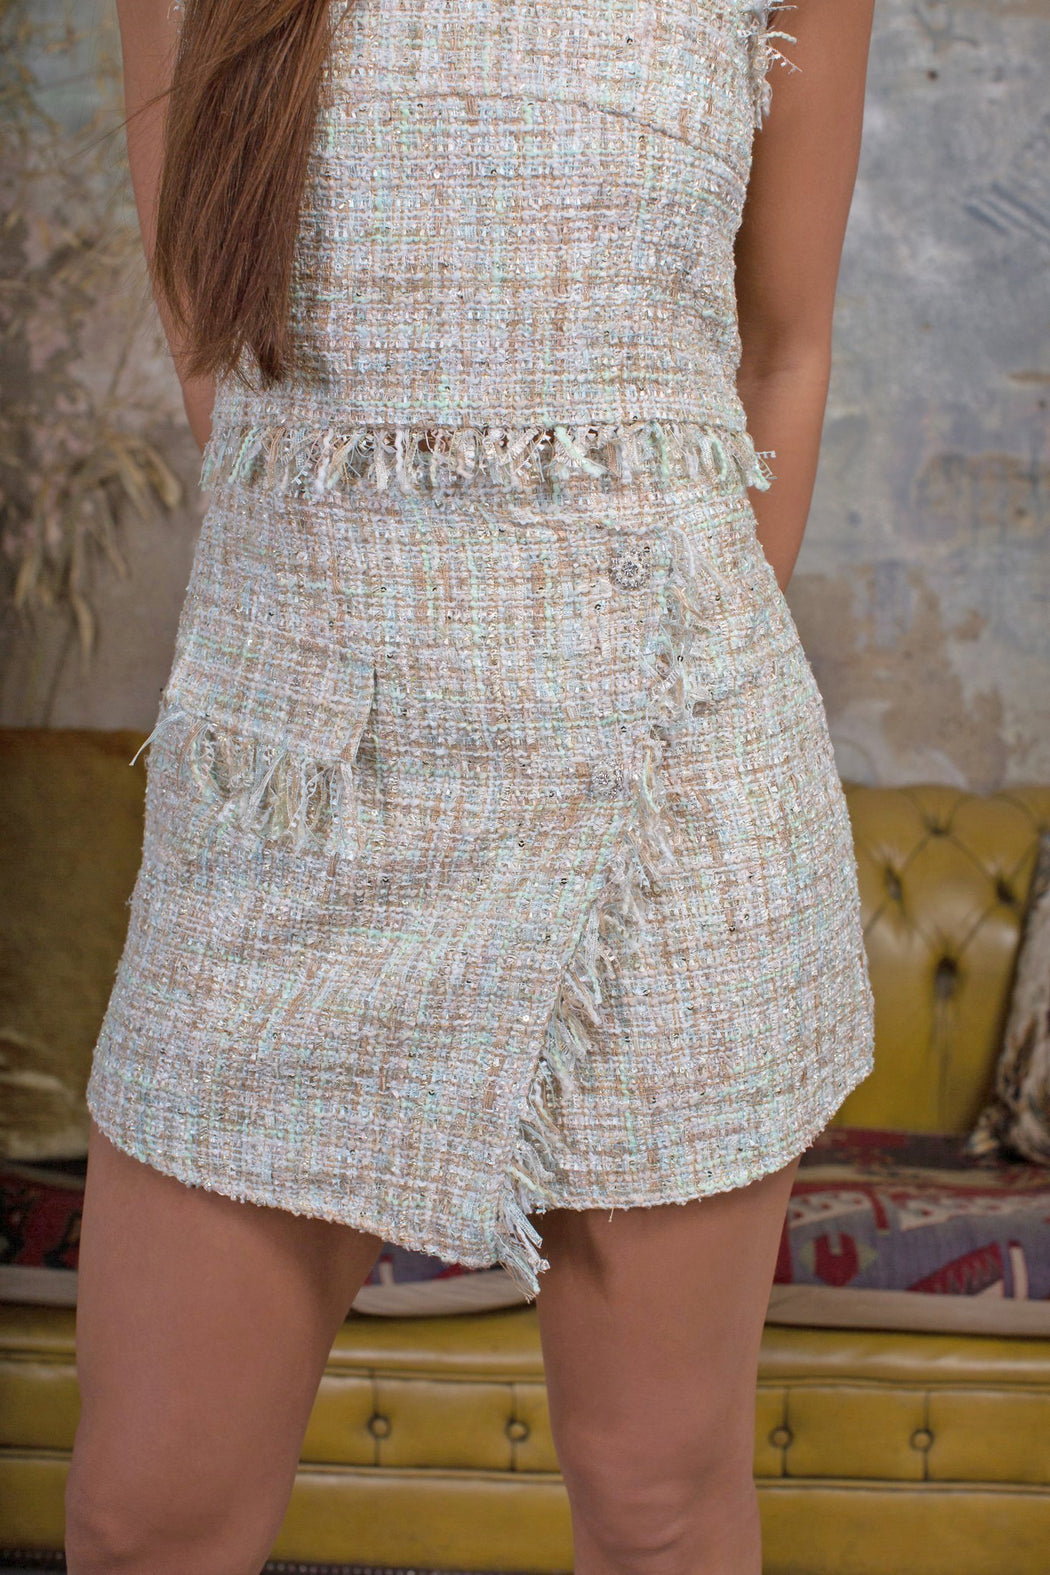 Pia Tweed Metallic Mini Skirt - Lavand Stories